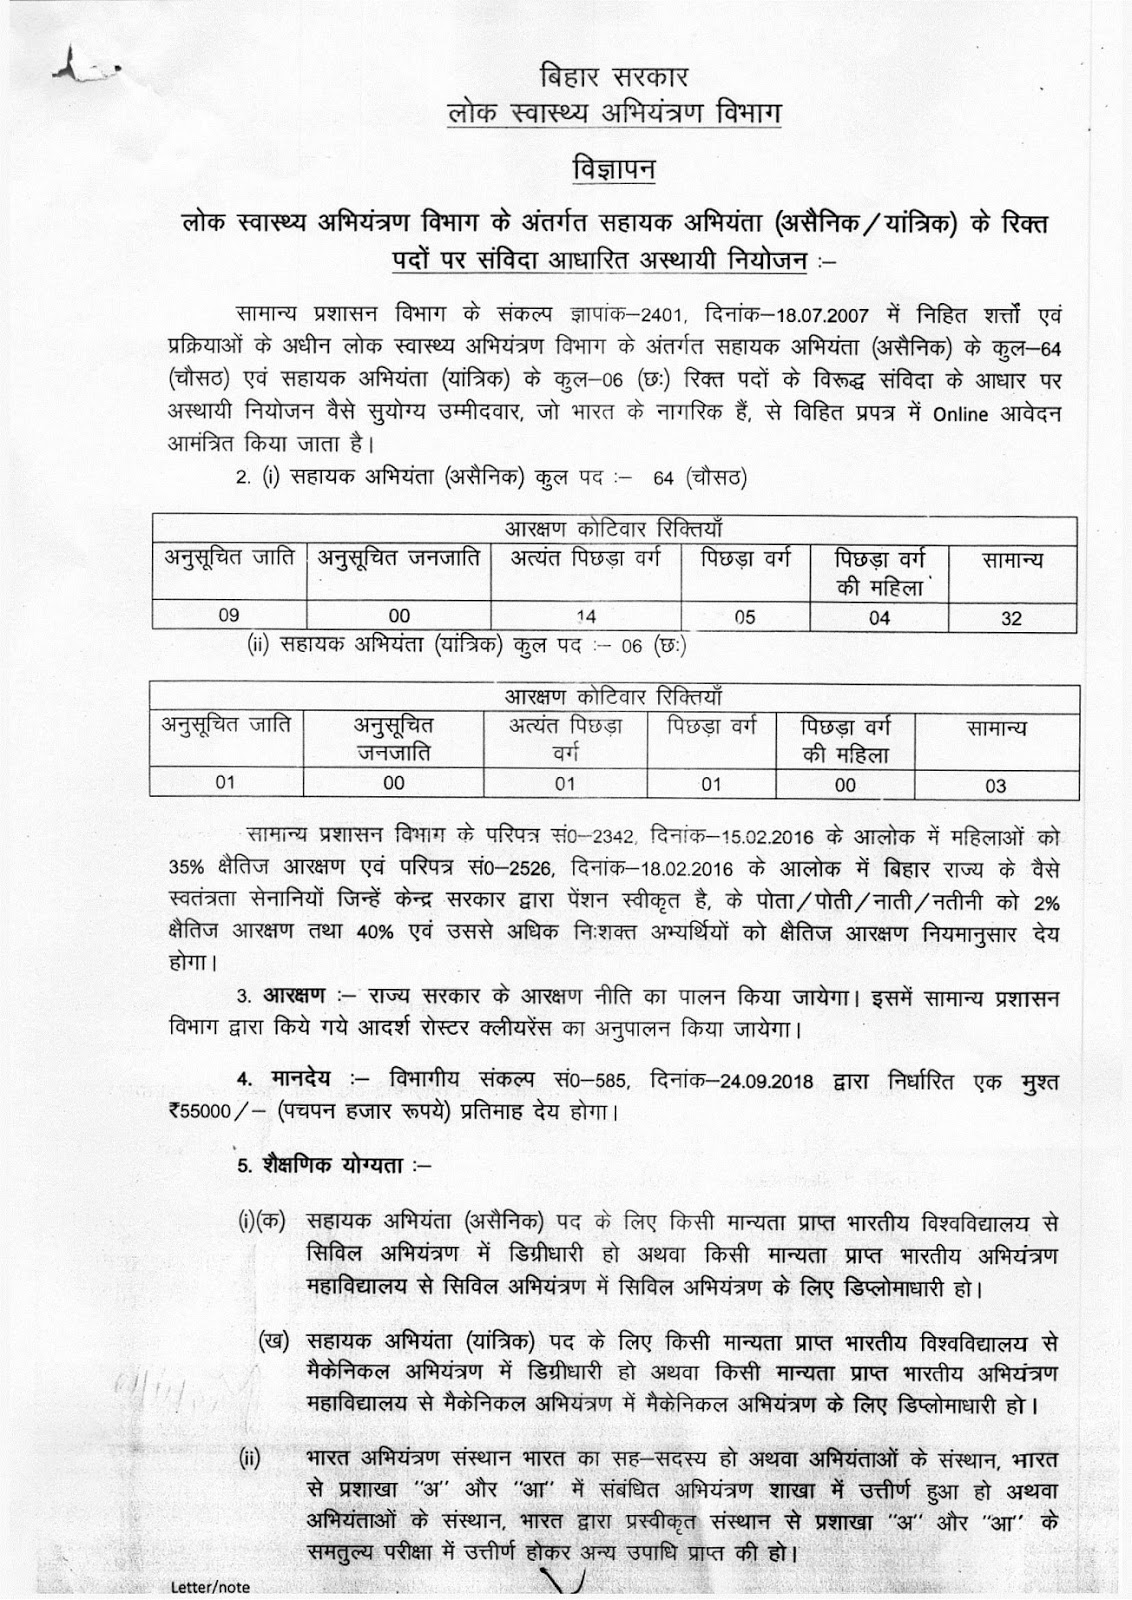 Application for Recruitment of Assistant Engineer (Civil / Mechanical) through valid Gate Score in Public Health Engineering Department, Govt. of Bihar